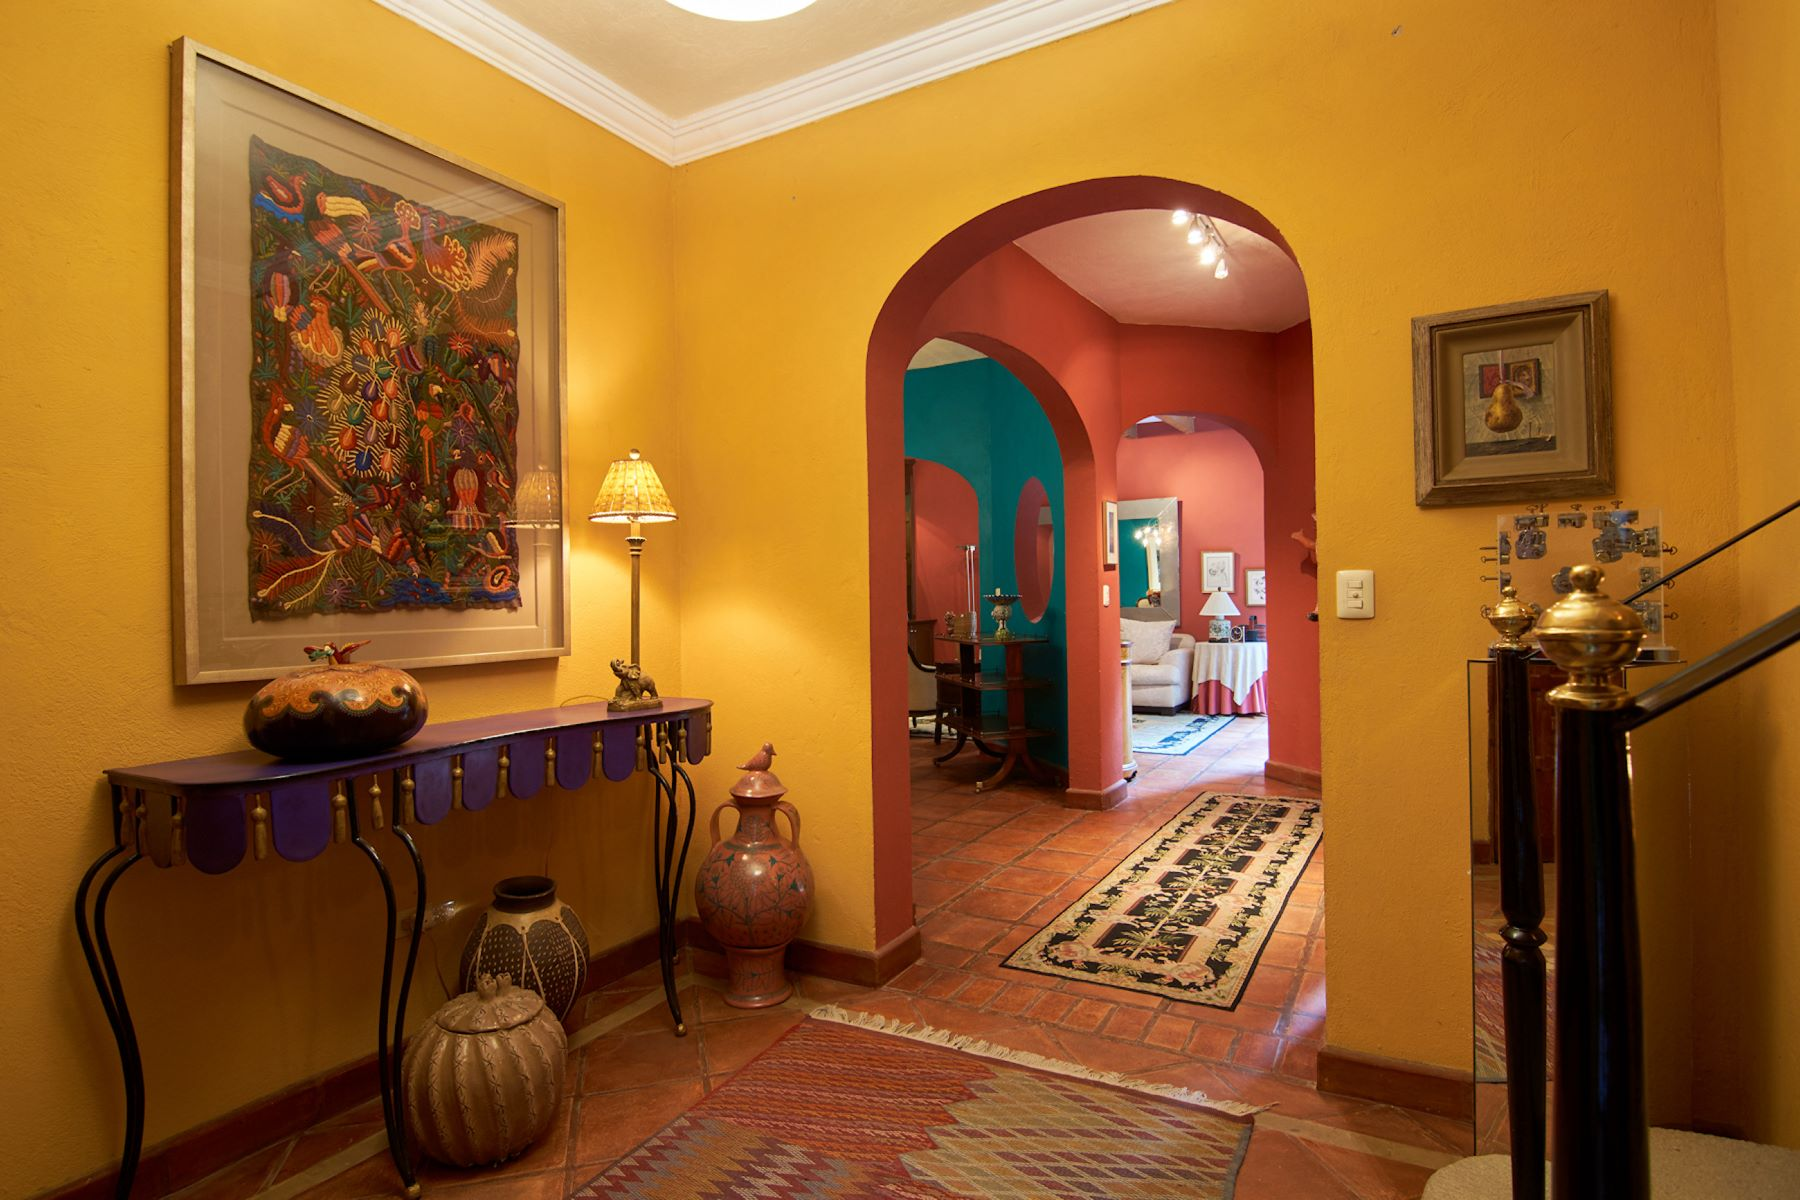 Single Family Home for Sale at Casa Gracia Gracia 6 San Miguel De Allende, Guanajuato 37700 Mexico